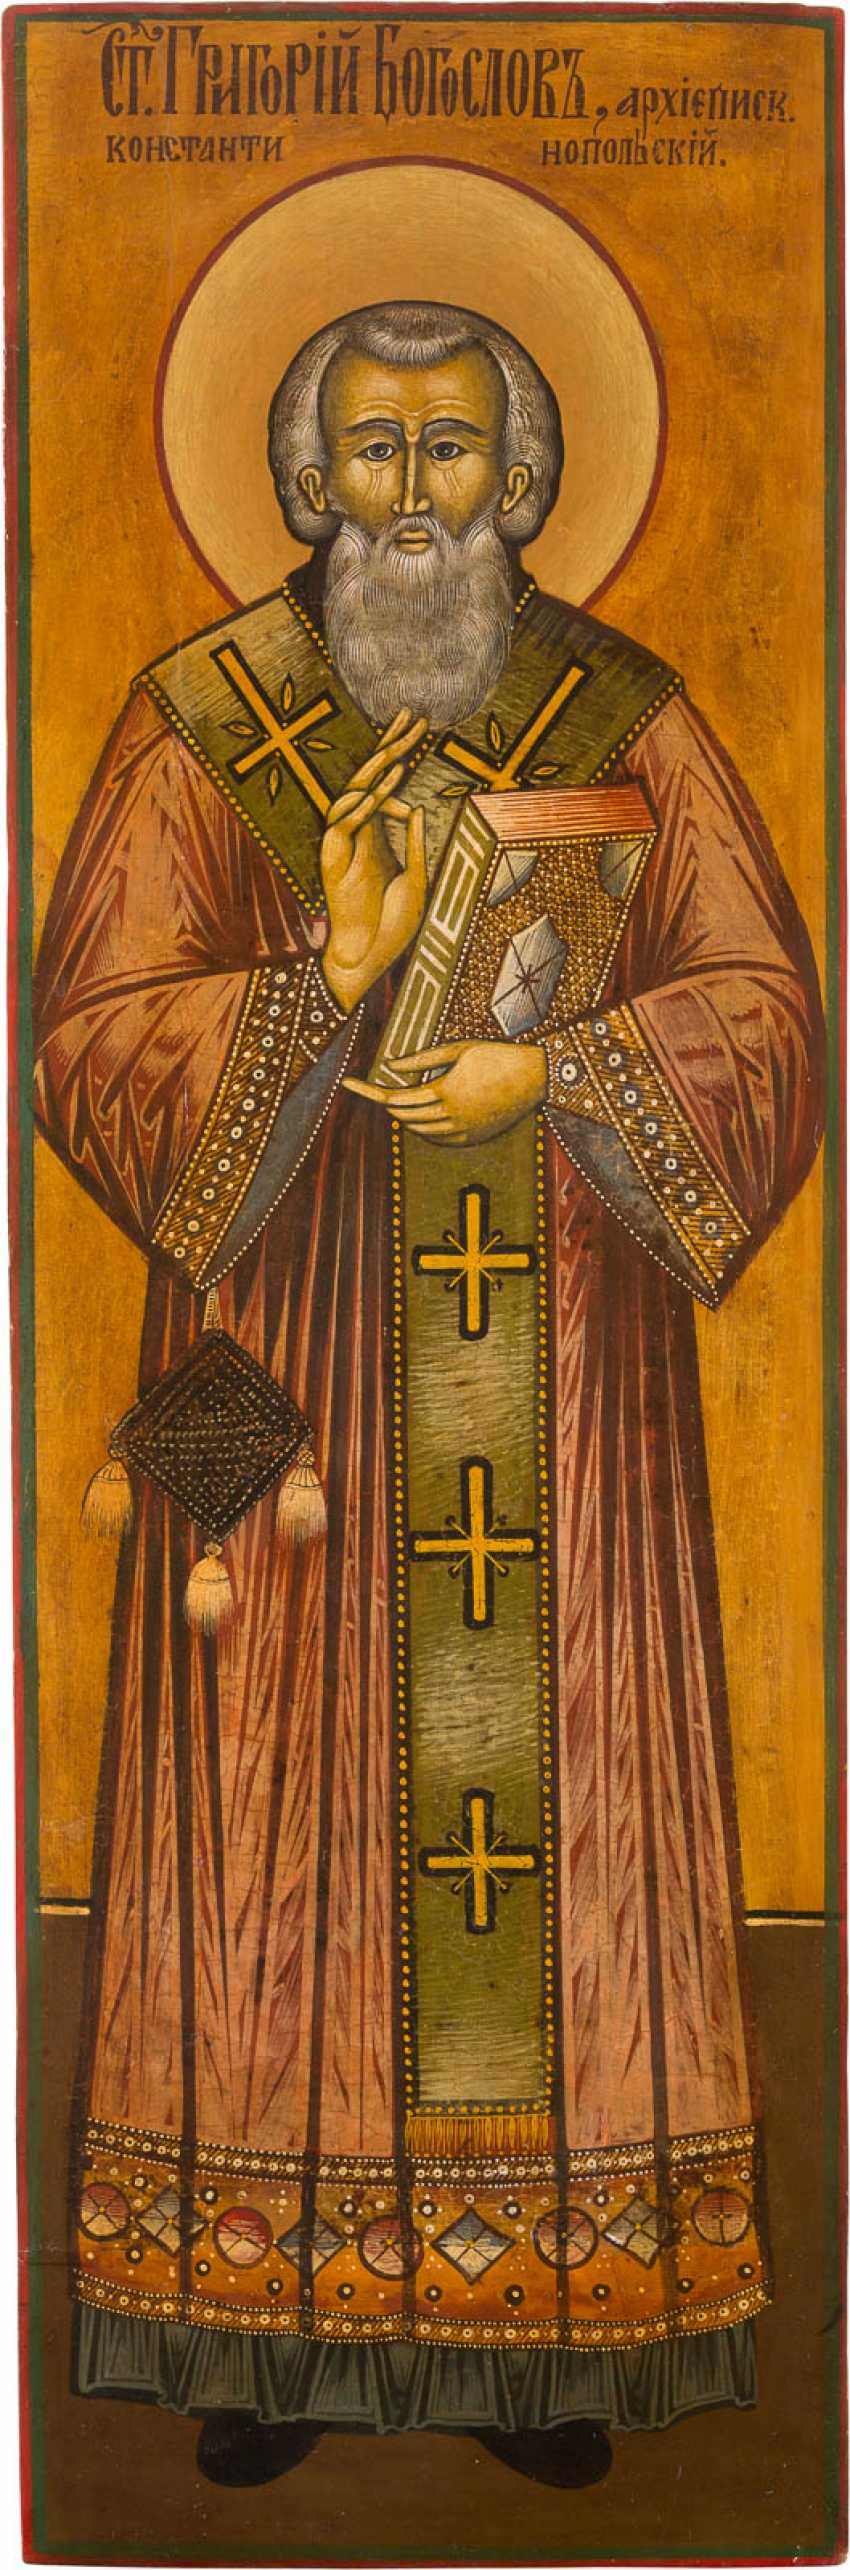 A BIG ICON WITH THE HOLY GREGORY THE THEOLOGIAN, BISHOP OF CONSTANTINOPLE - photo 1